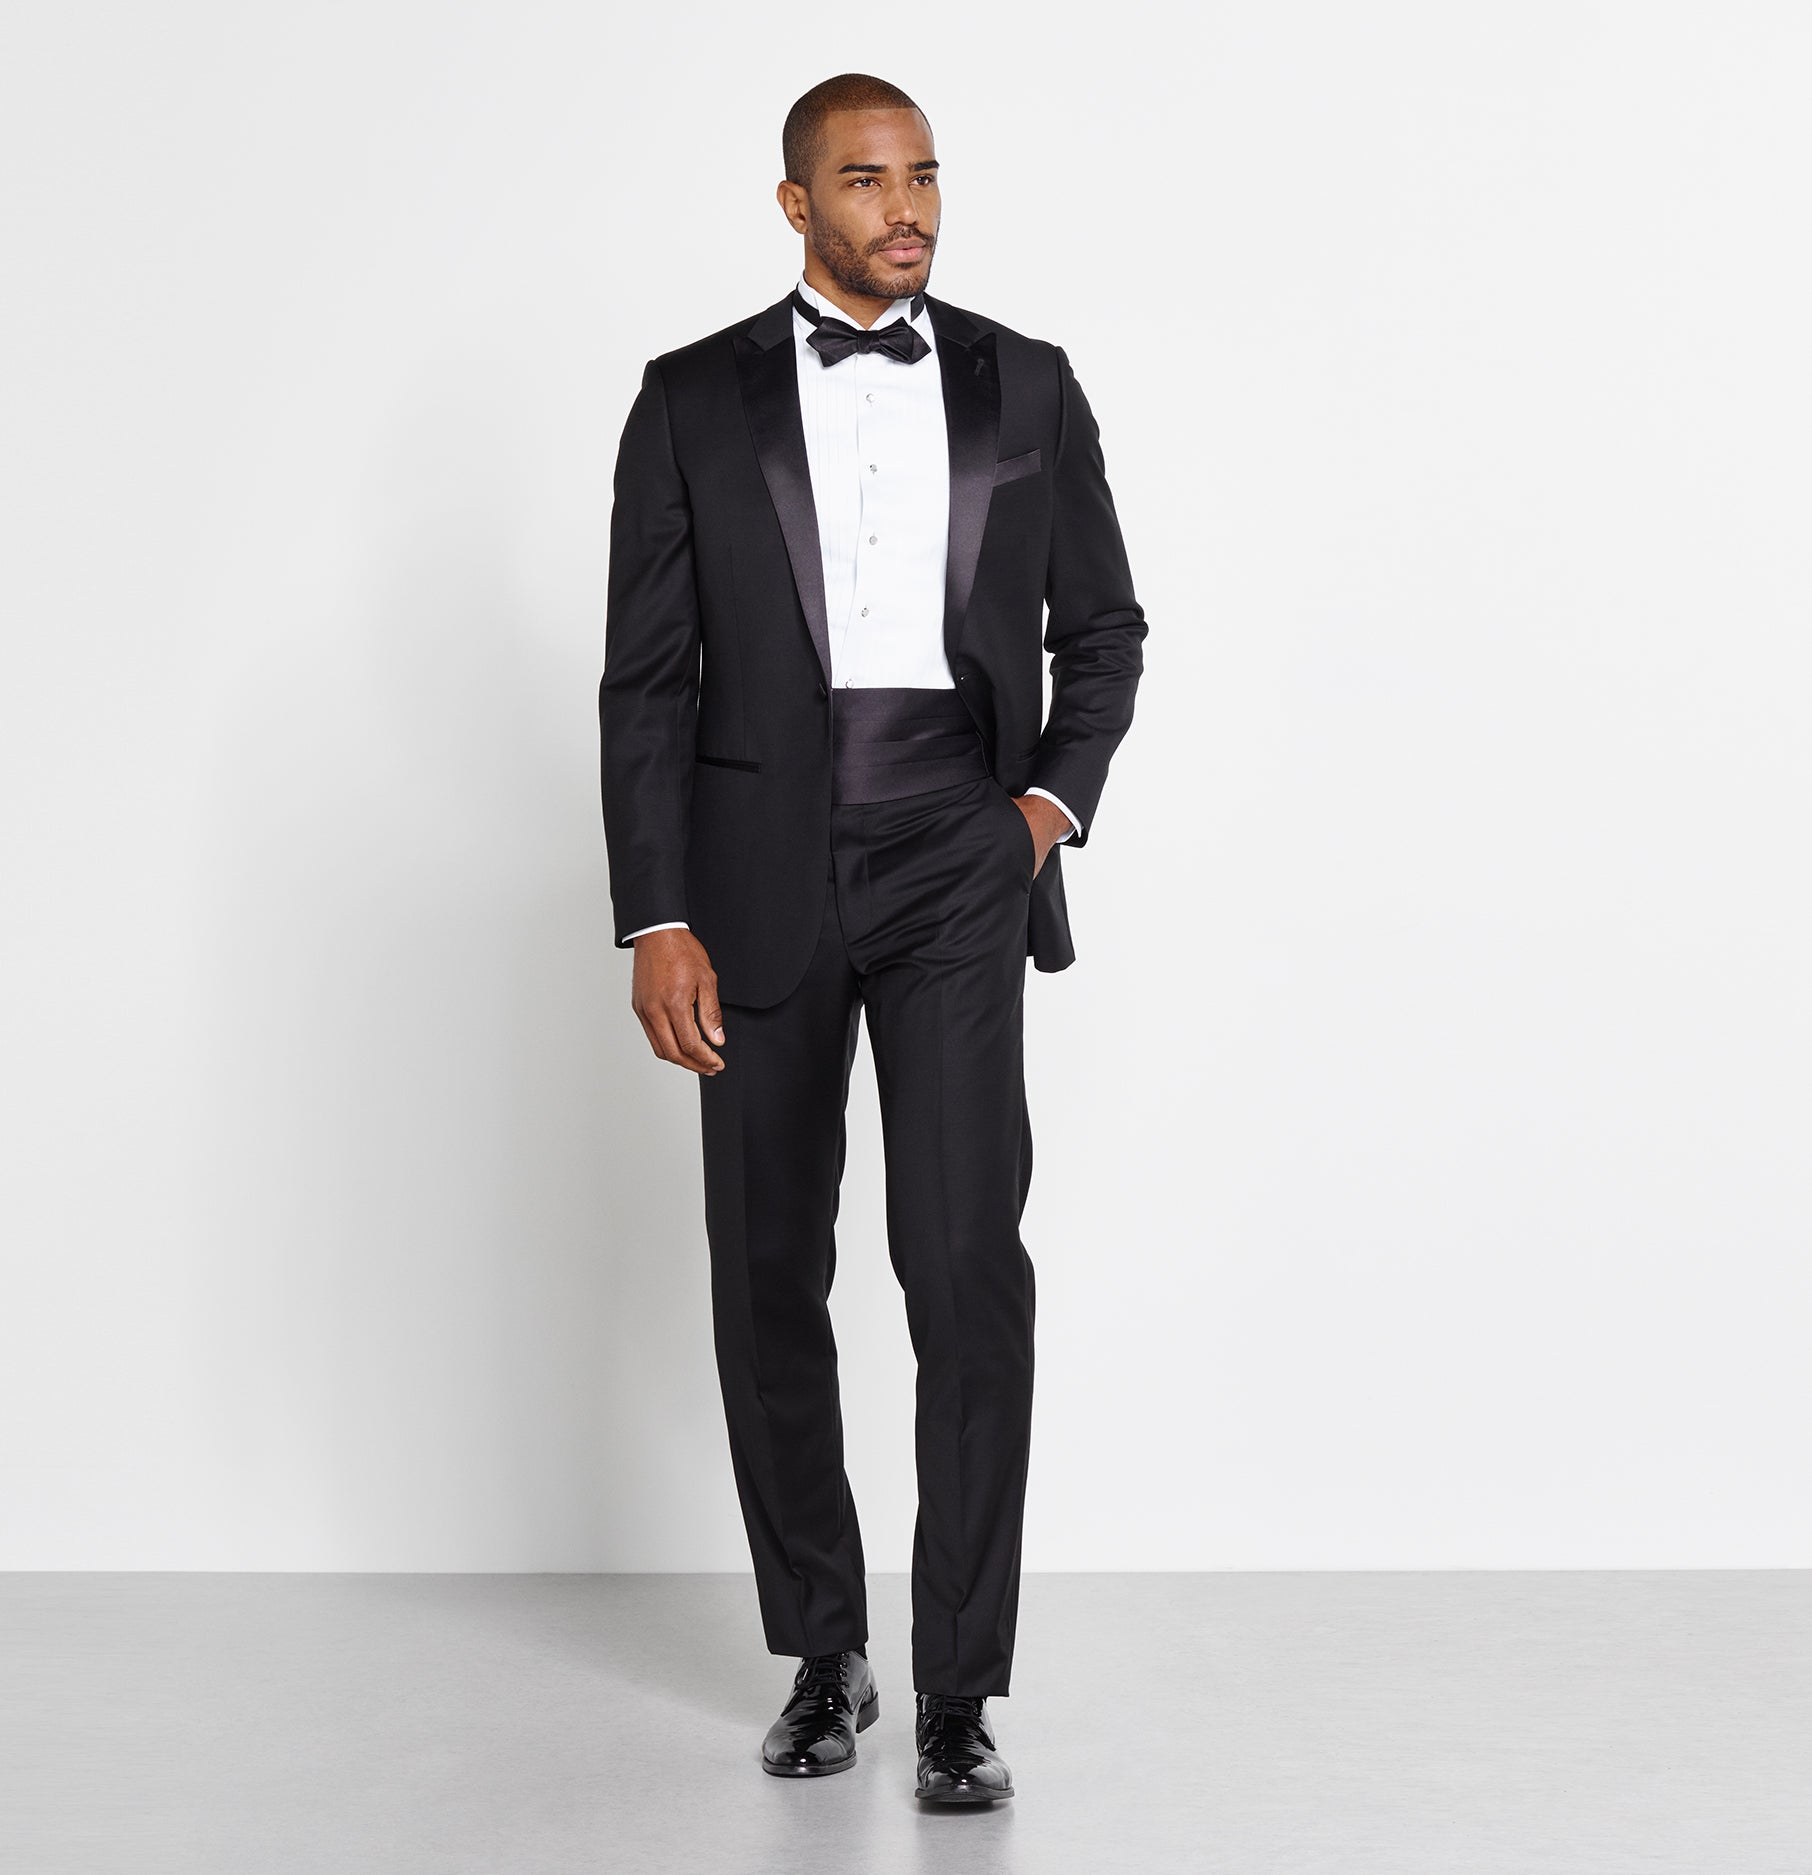 Cummerbund | The Black Tux